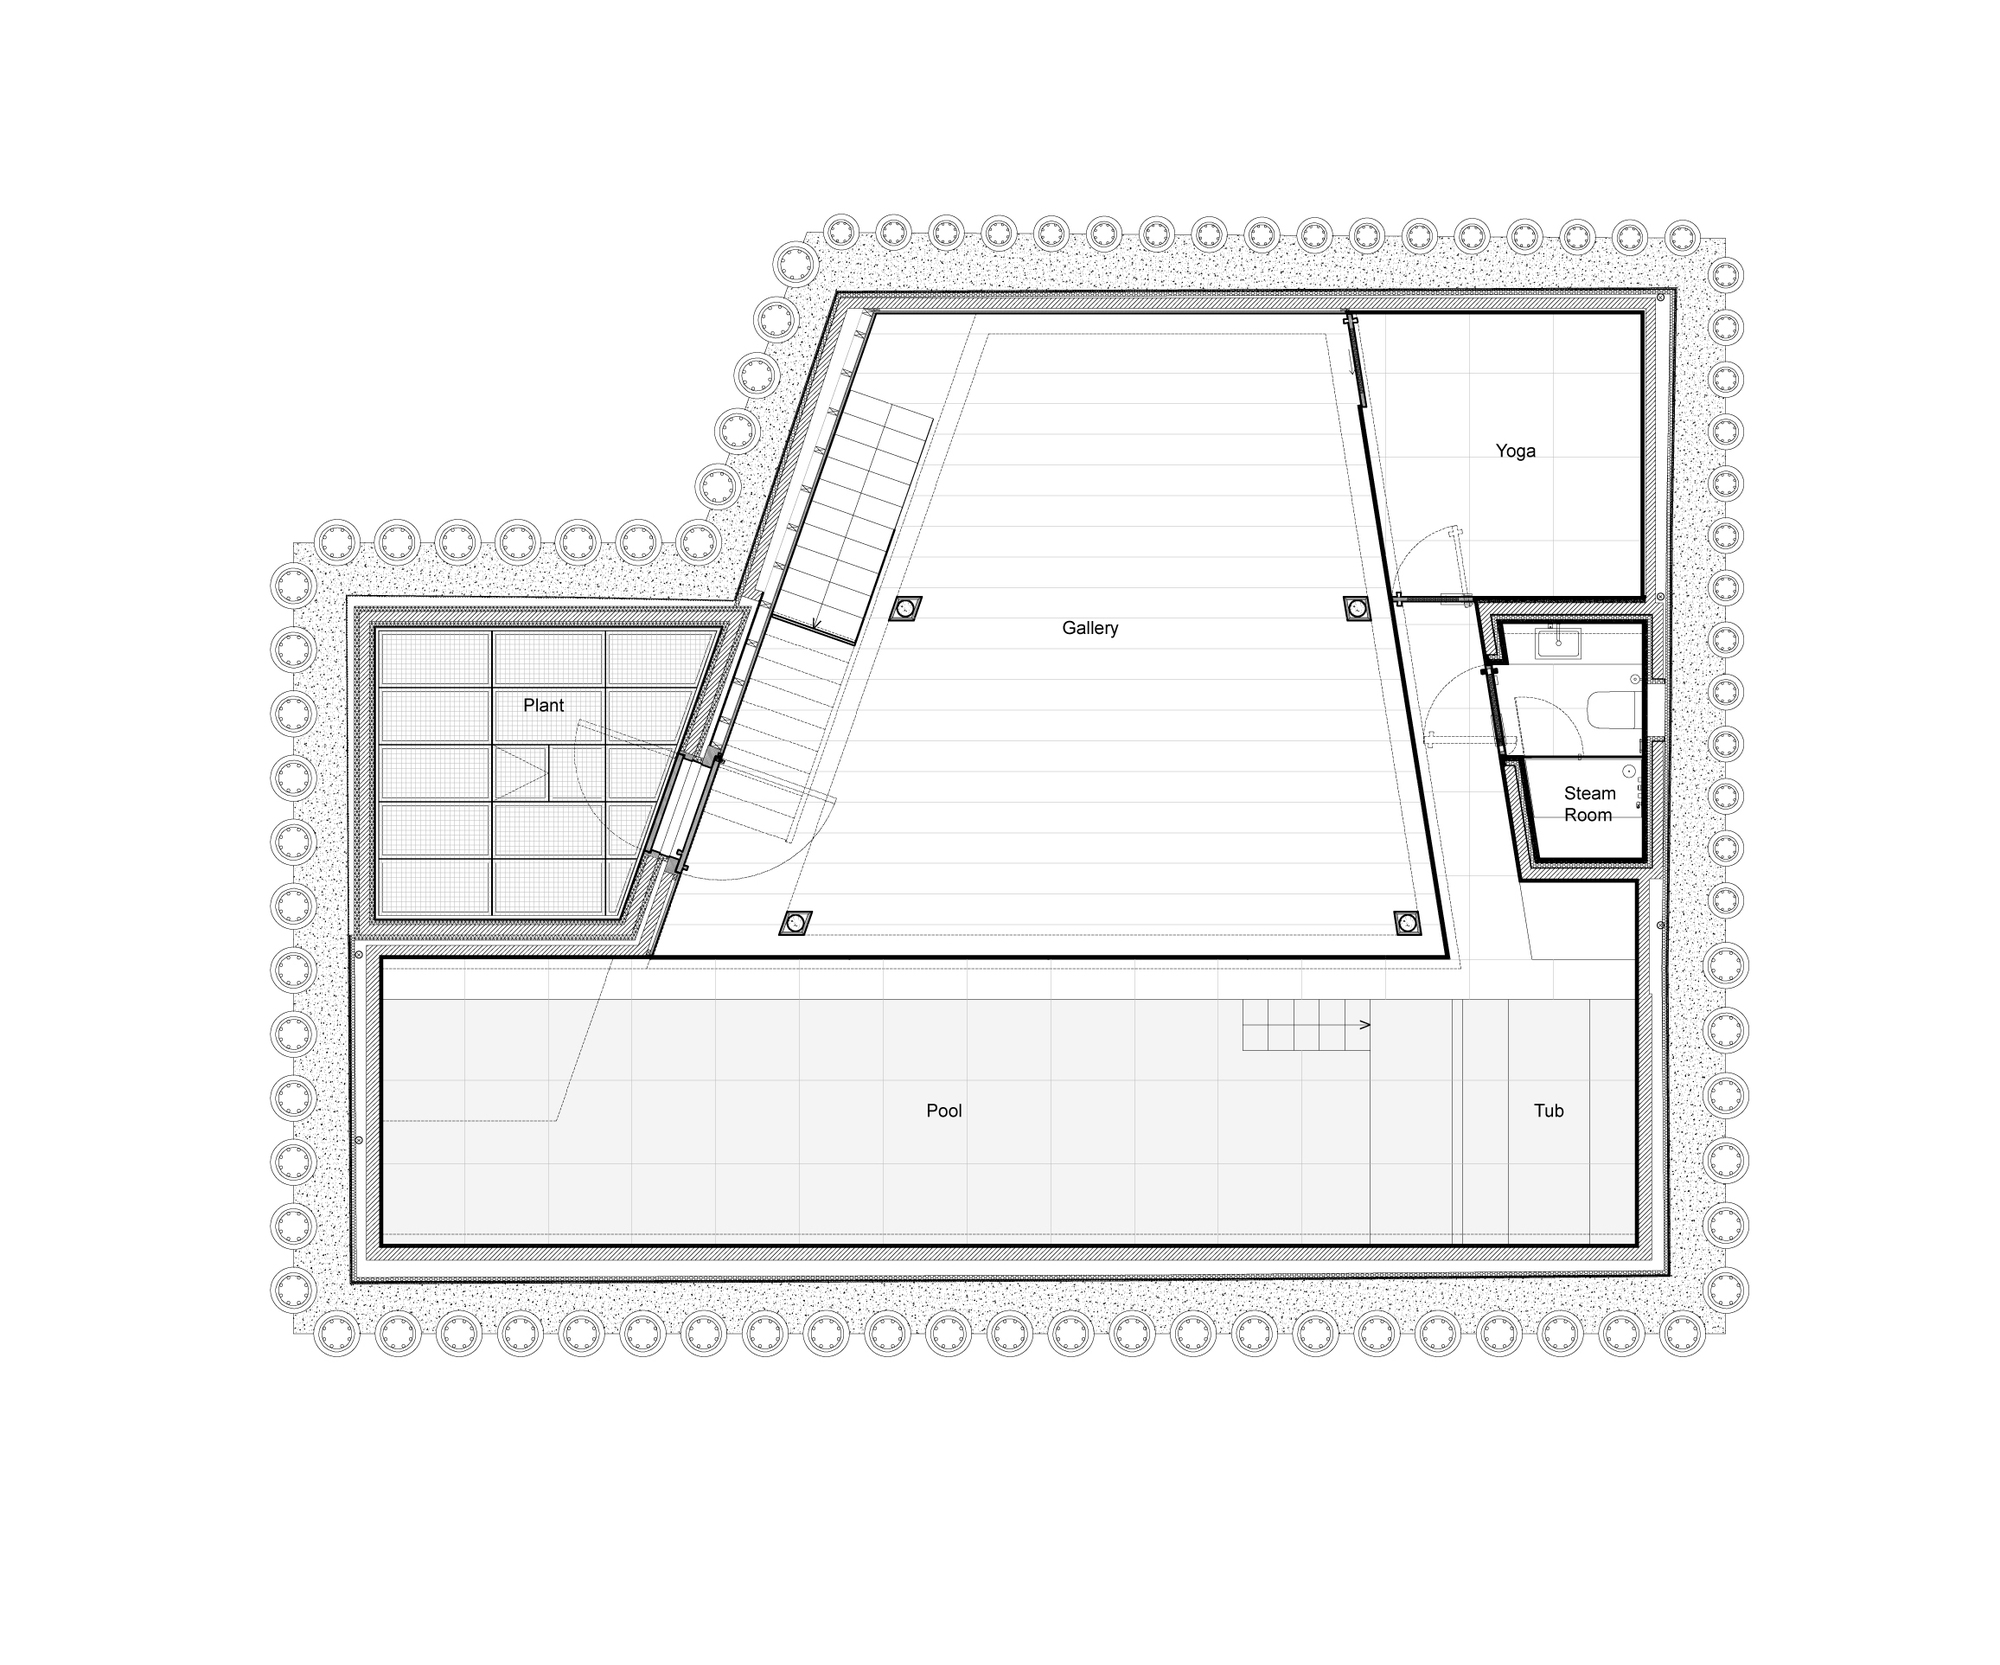 40_Sub_Basement_Floor_Plan_with_text.jpg